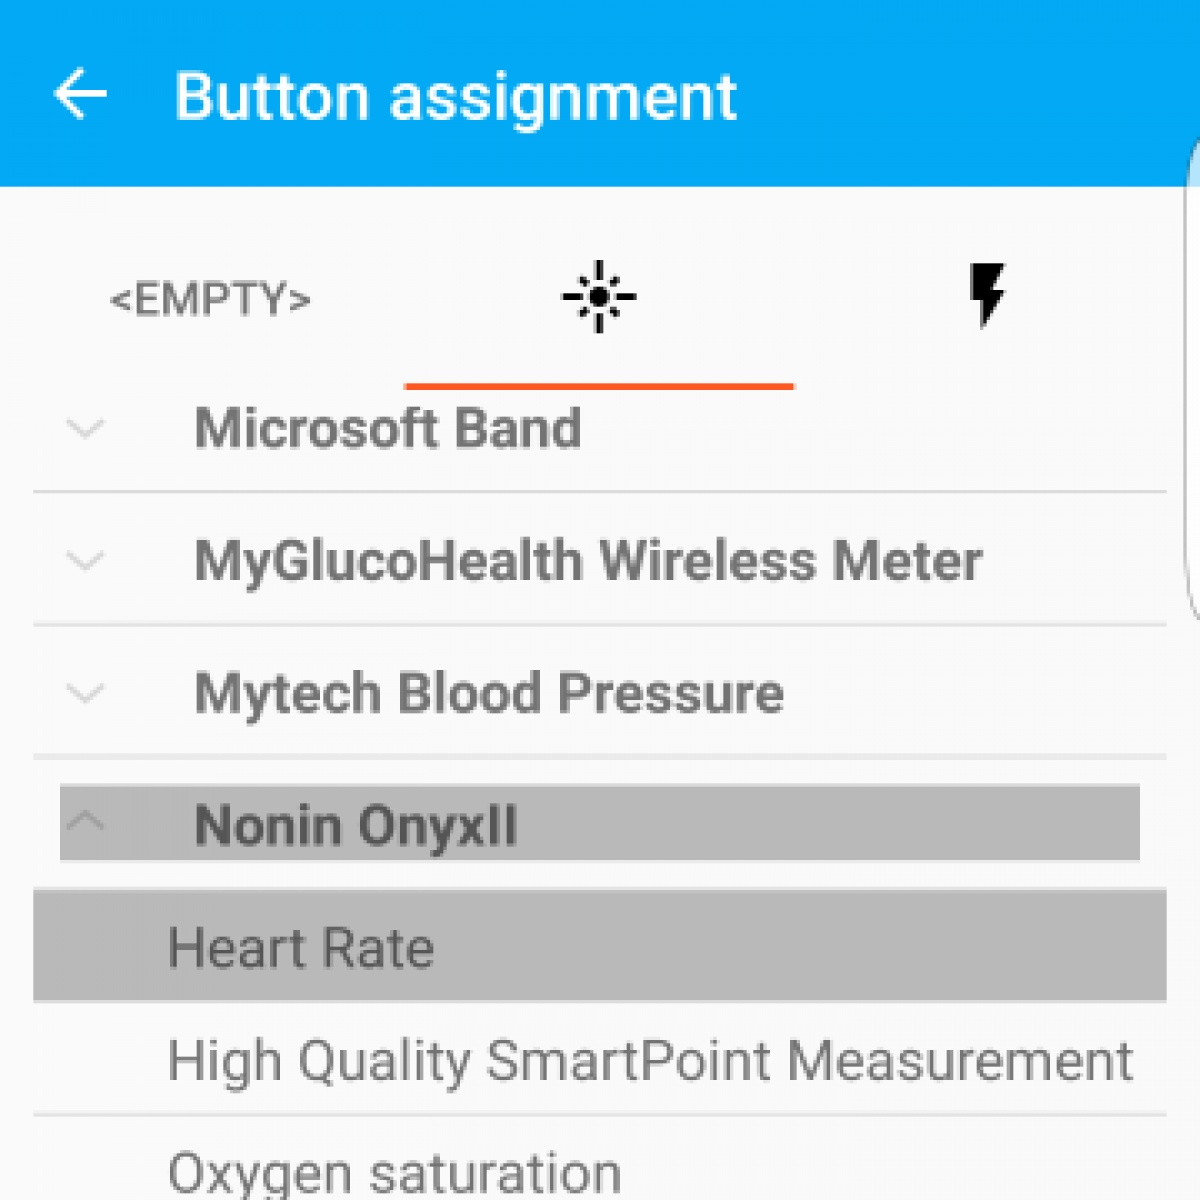 Back to basics -  a new eHealth sensor supported: Nonin OnyxII